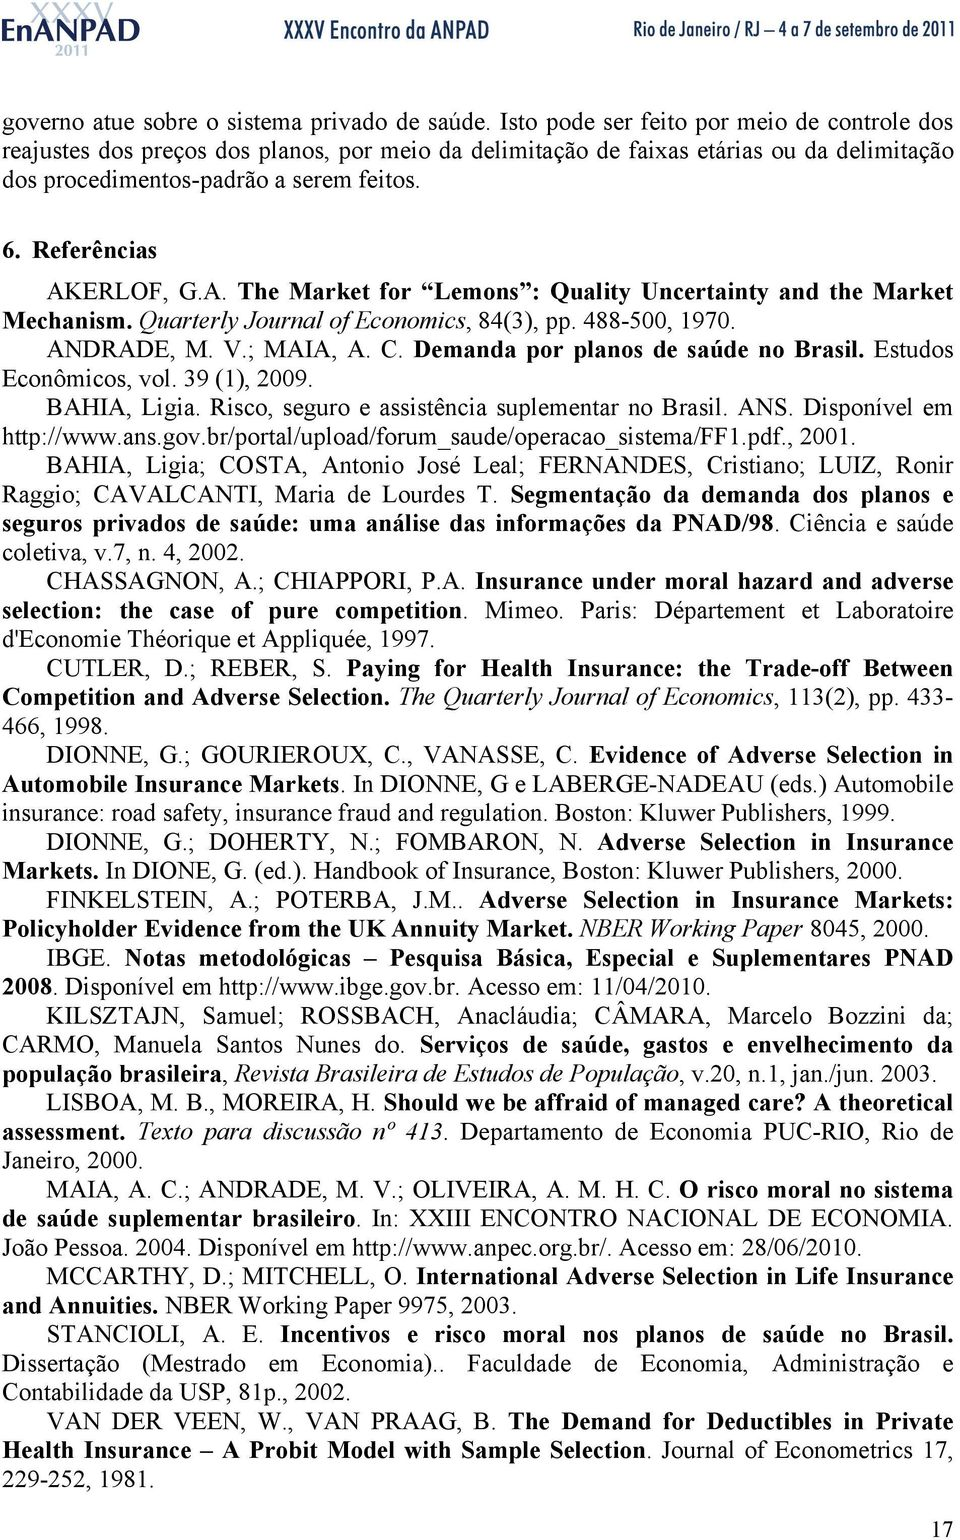 RLOF, G.A. The Market for Lemos : Qualty Ucertaty ad the Market Mechasm. Quarterly Joural of coomcs, 84(3), pp. 488-500, 970. ANDRAD, M. V.; MAIA, A. C. Demada por plaos de saúde o Brasl.